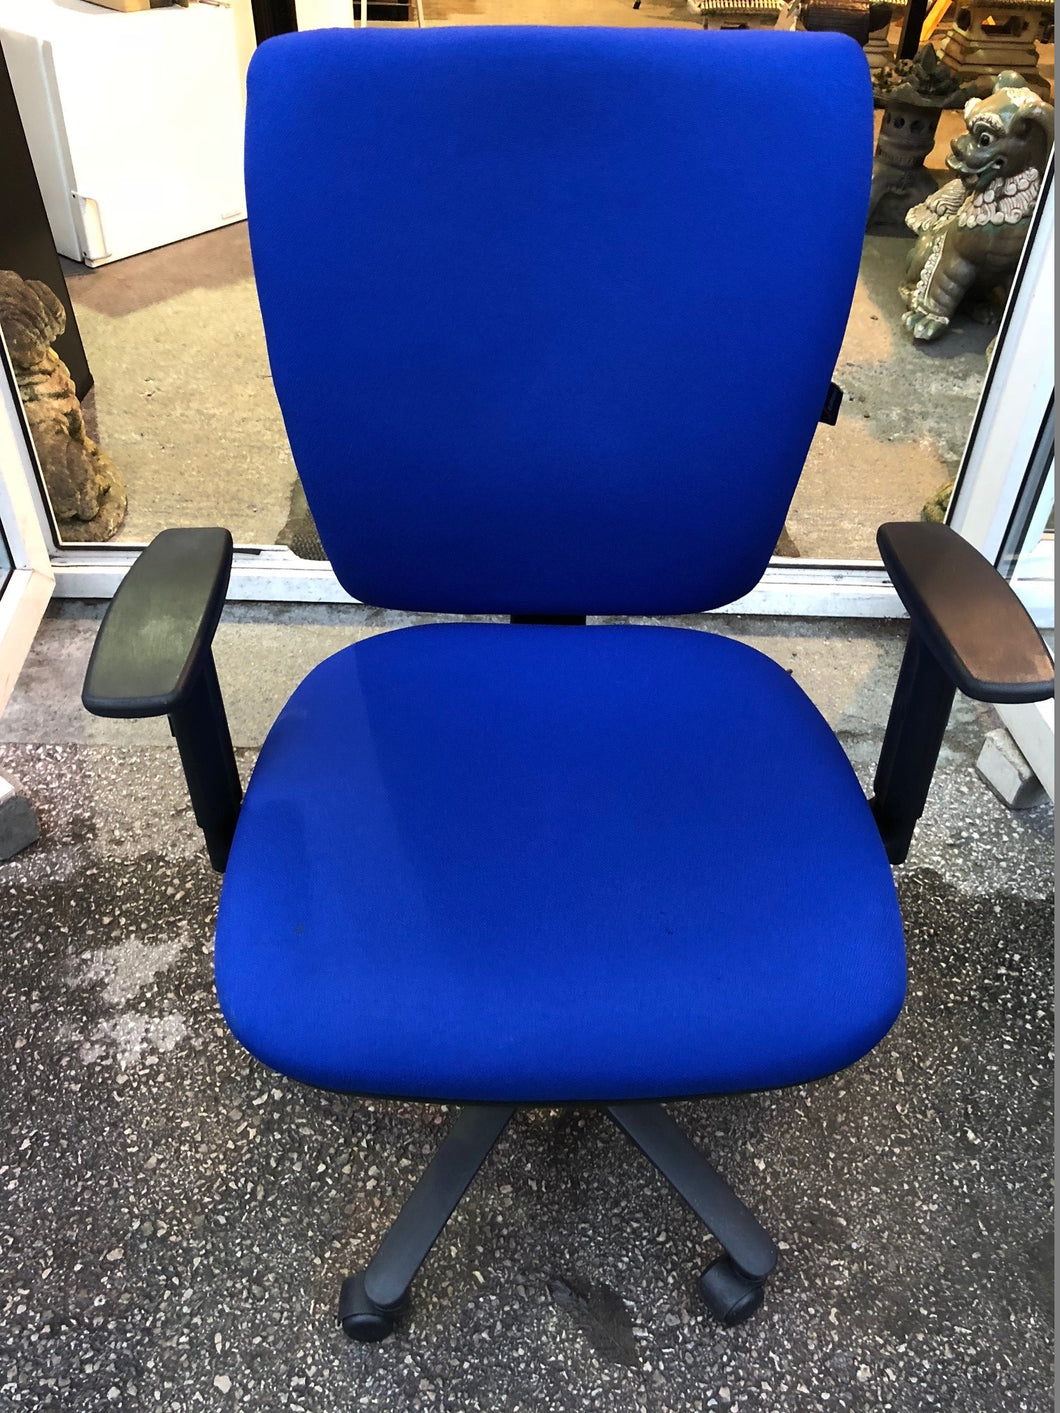 Blue High Back Operators Chair With Arms - Flogit2us.com